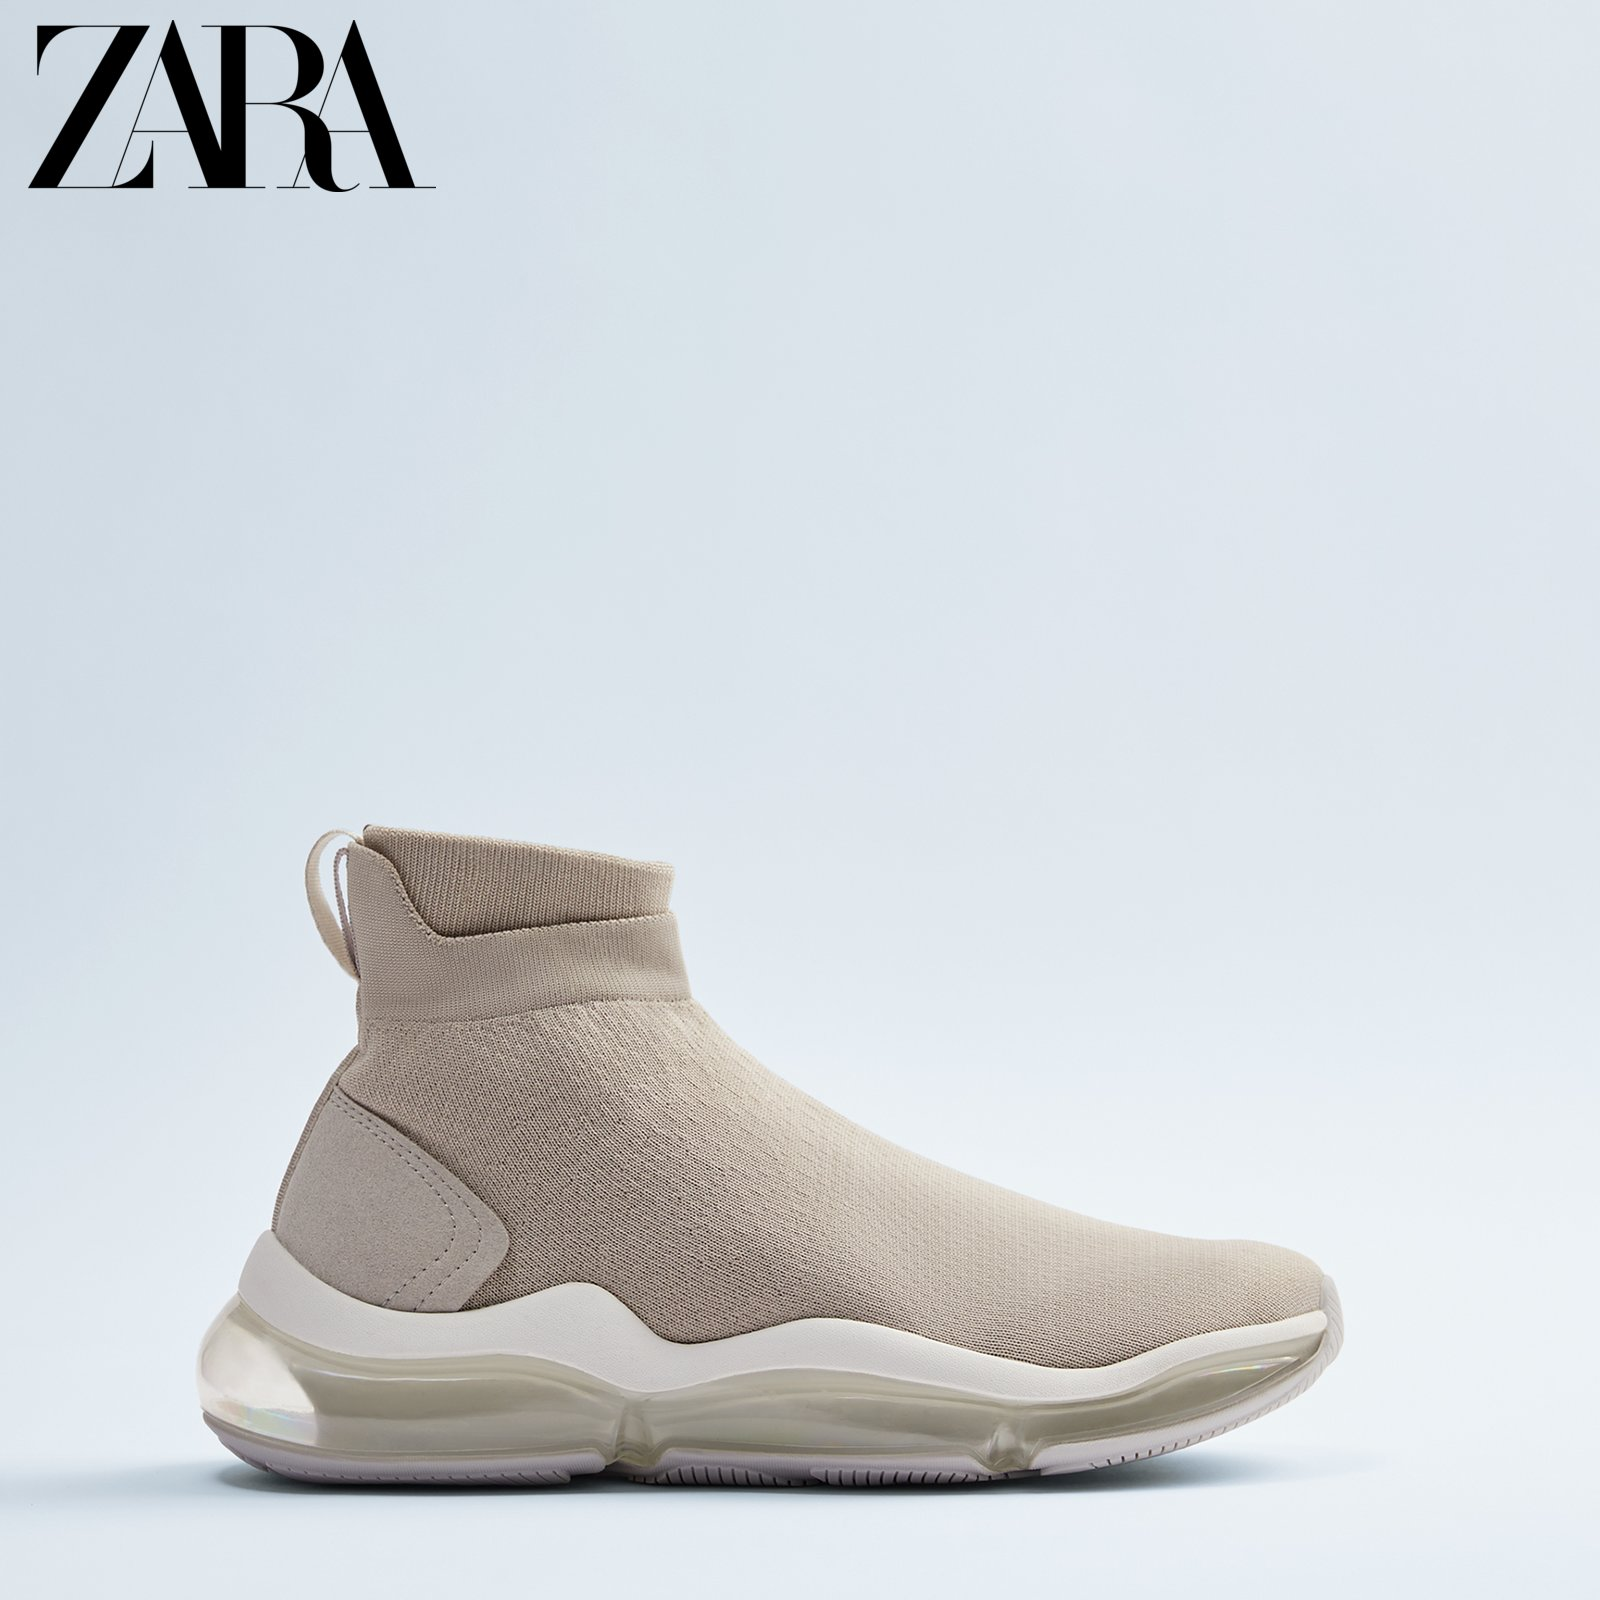 Zara new men's shoes grey white high thickness sole socks sneaker 12120520120